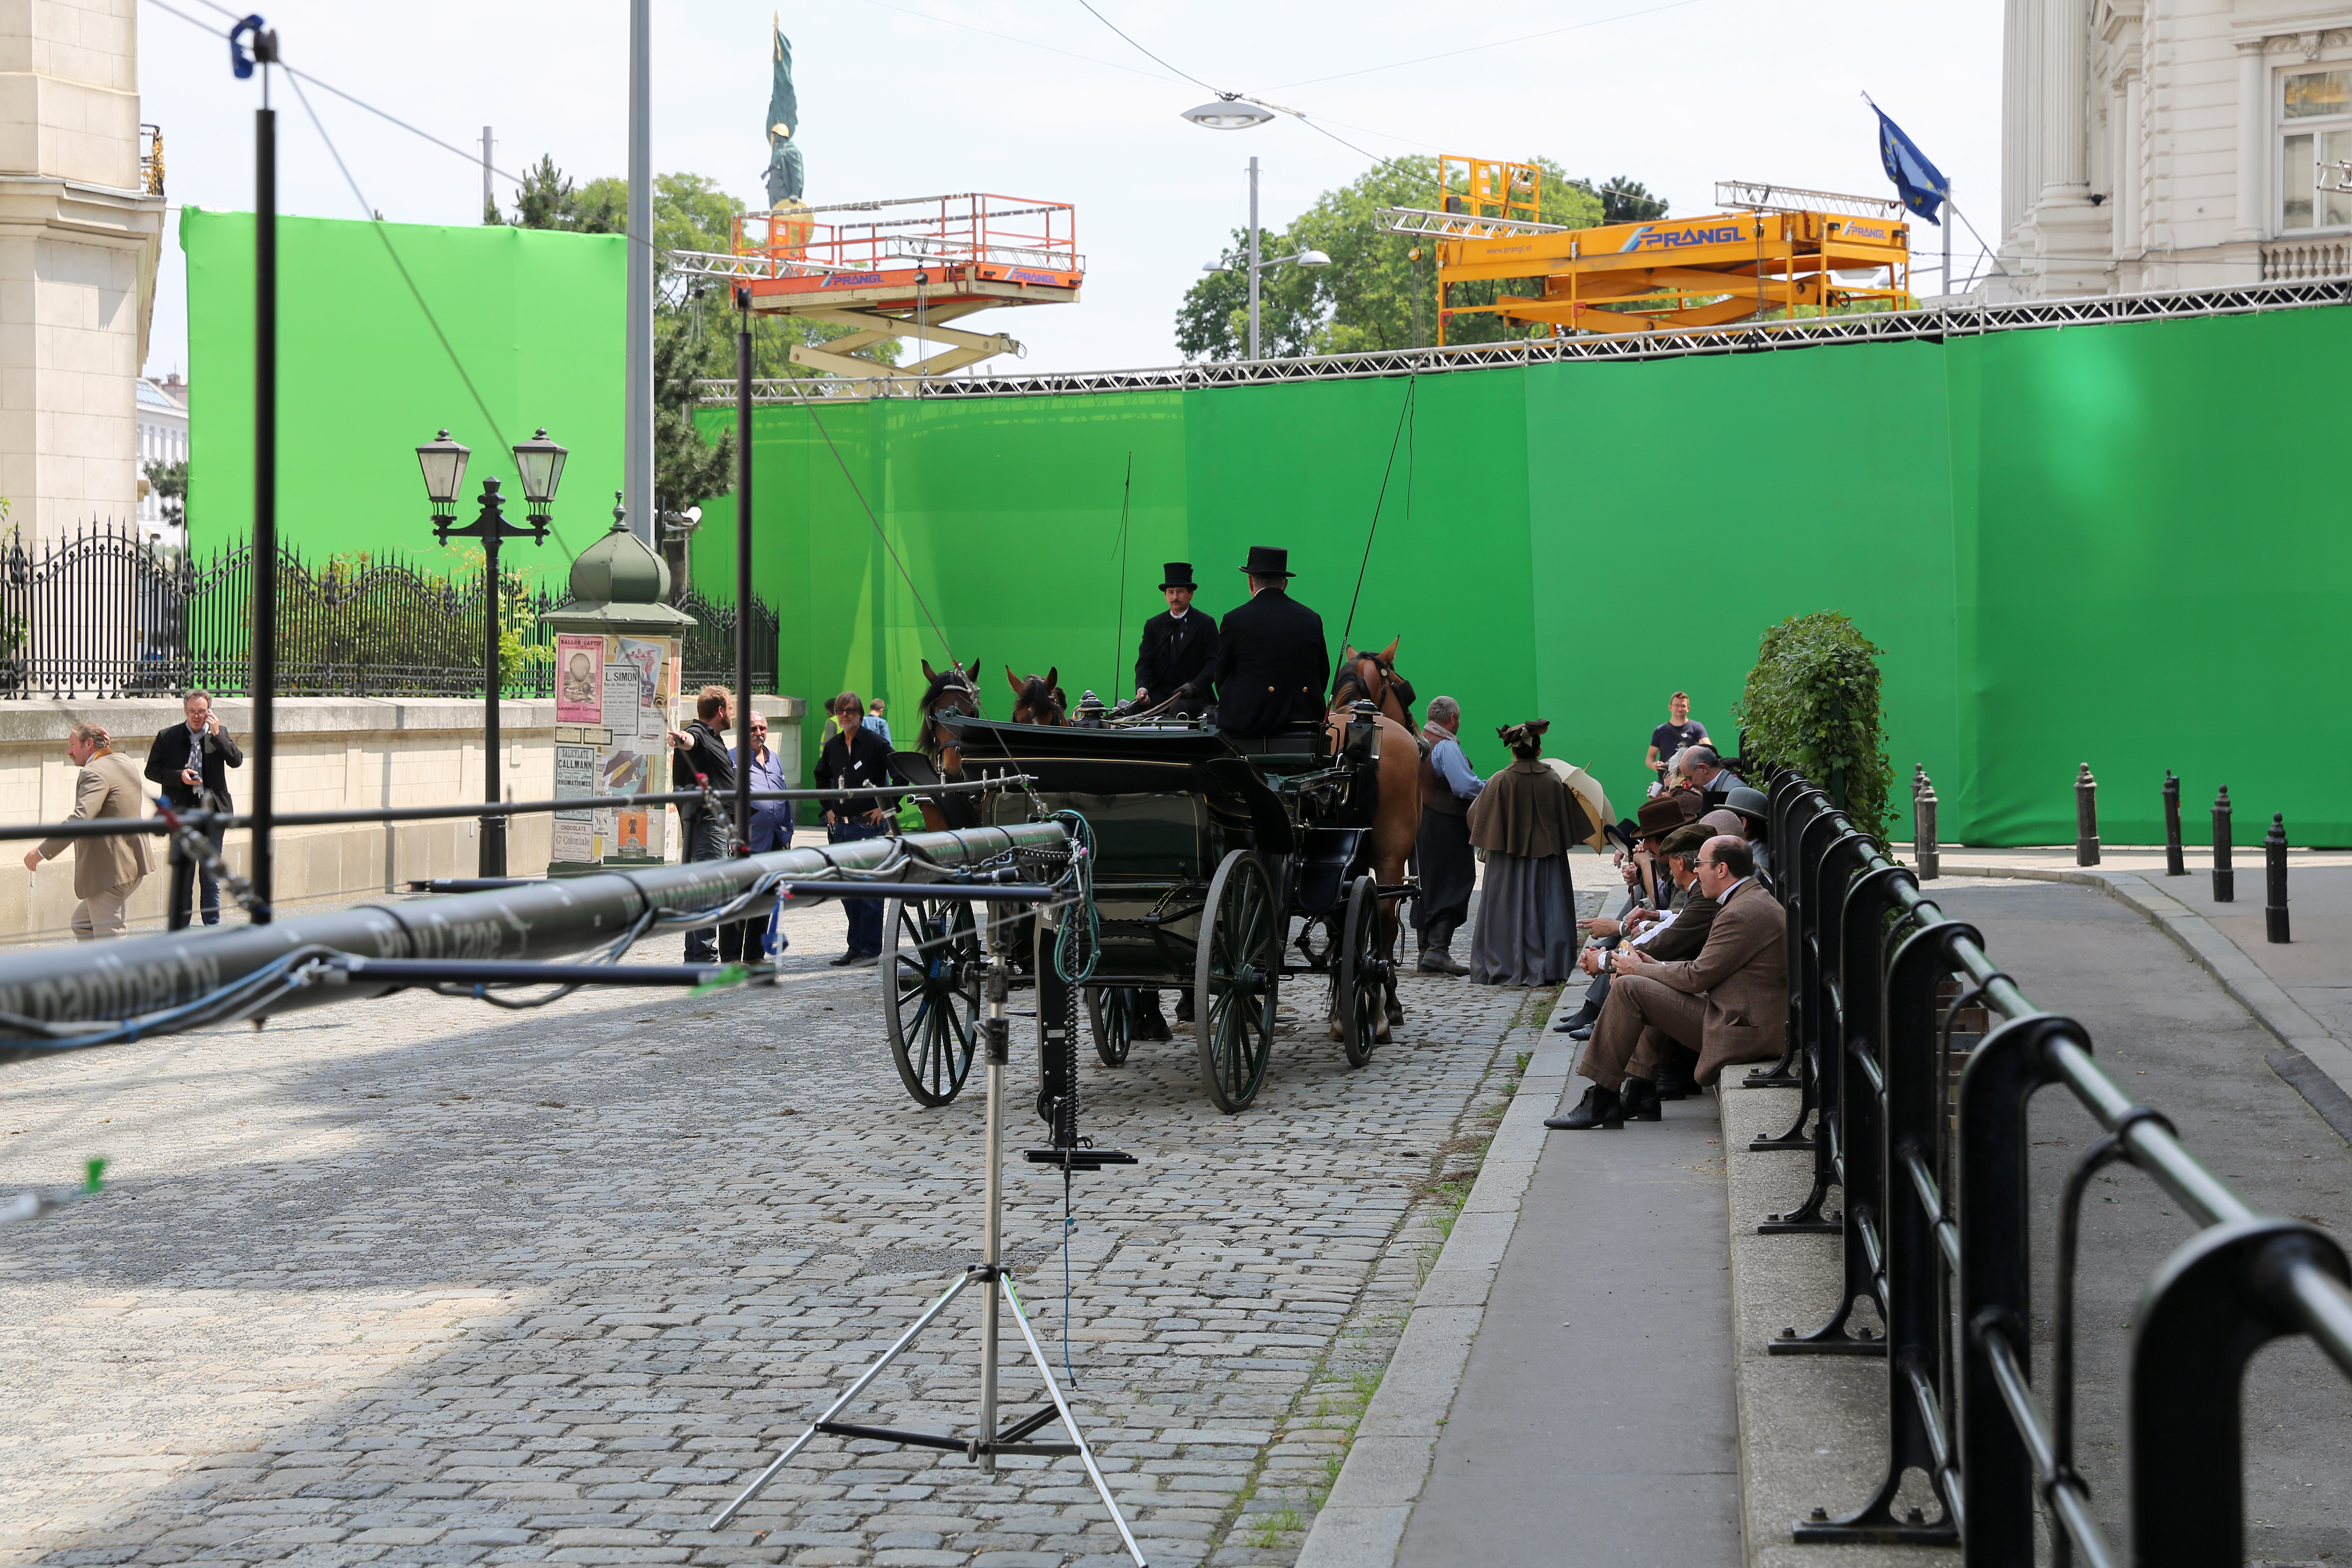 Why are movies filmed on a green background